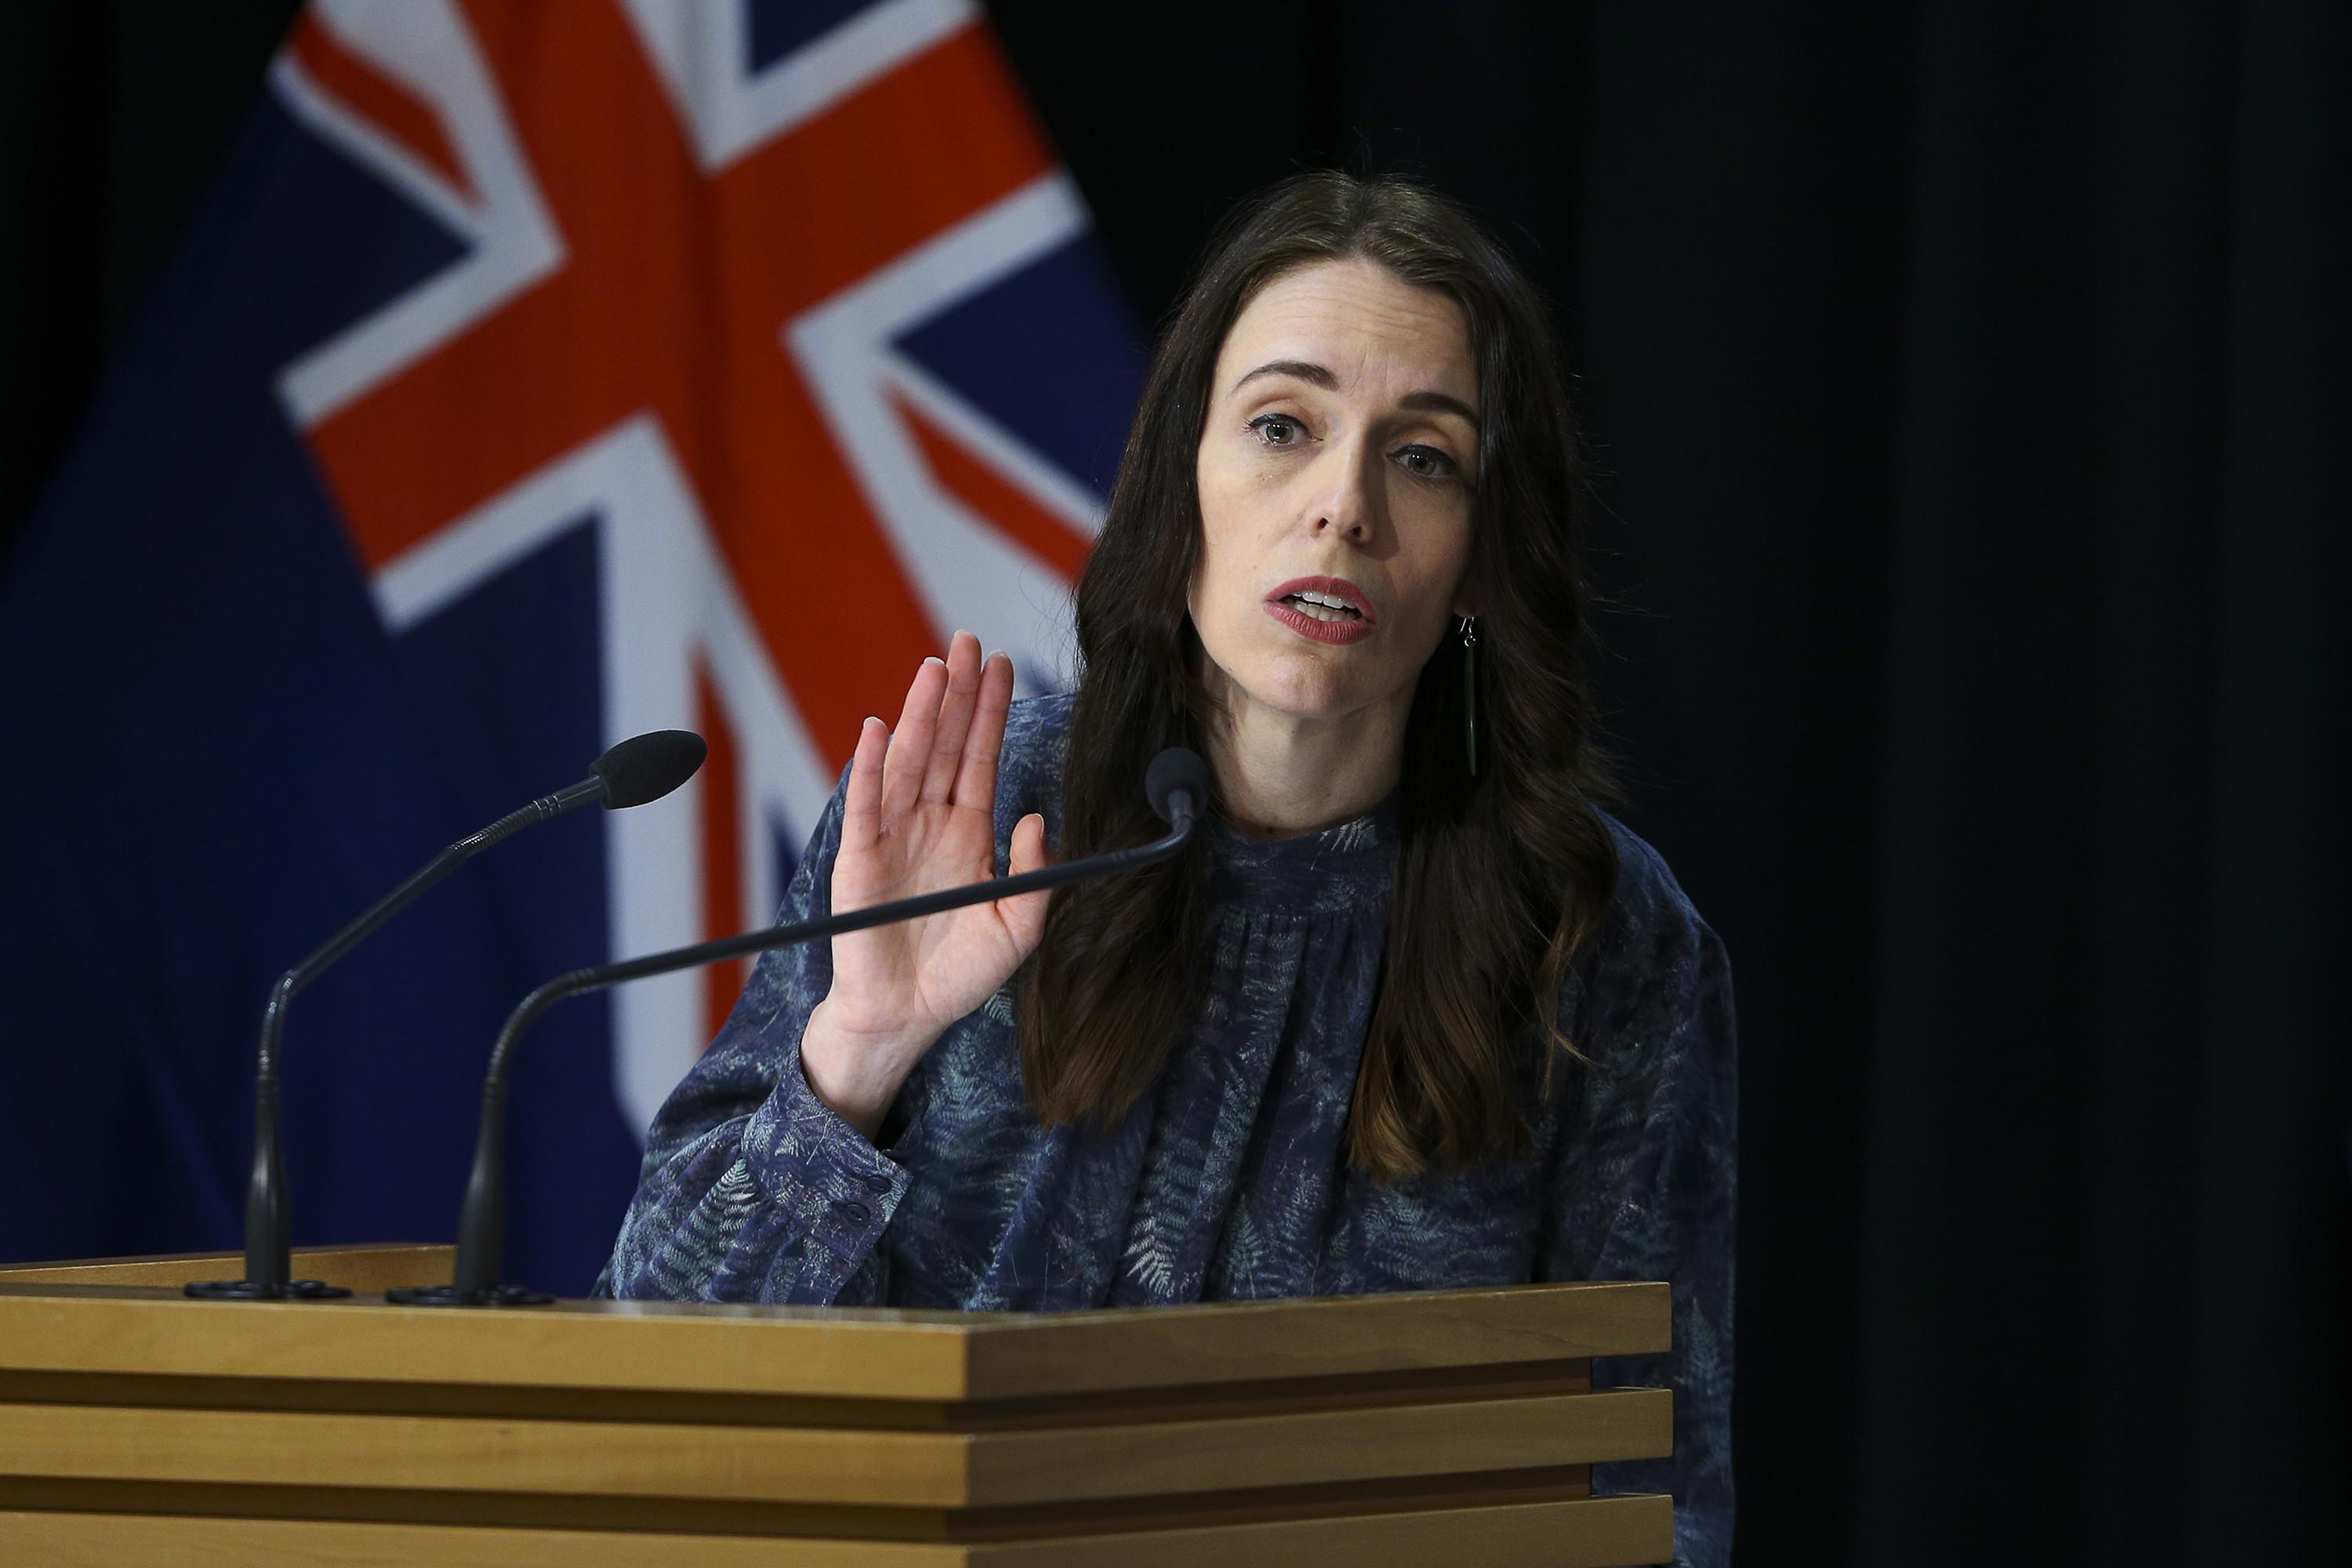 New Zealand Prime Minister Jacinda Ardern speaks to media during a press conference at Parliament on August 21, in Wellington, New Zealand.